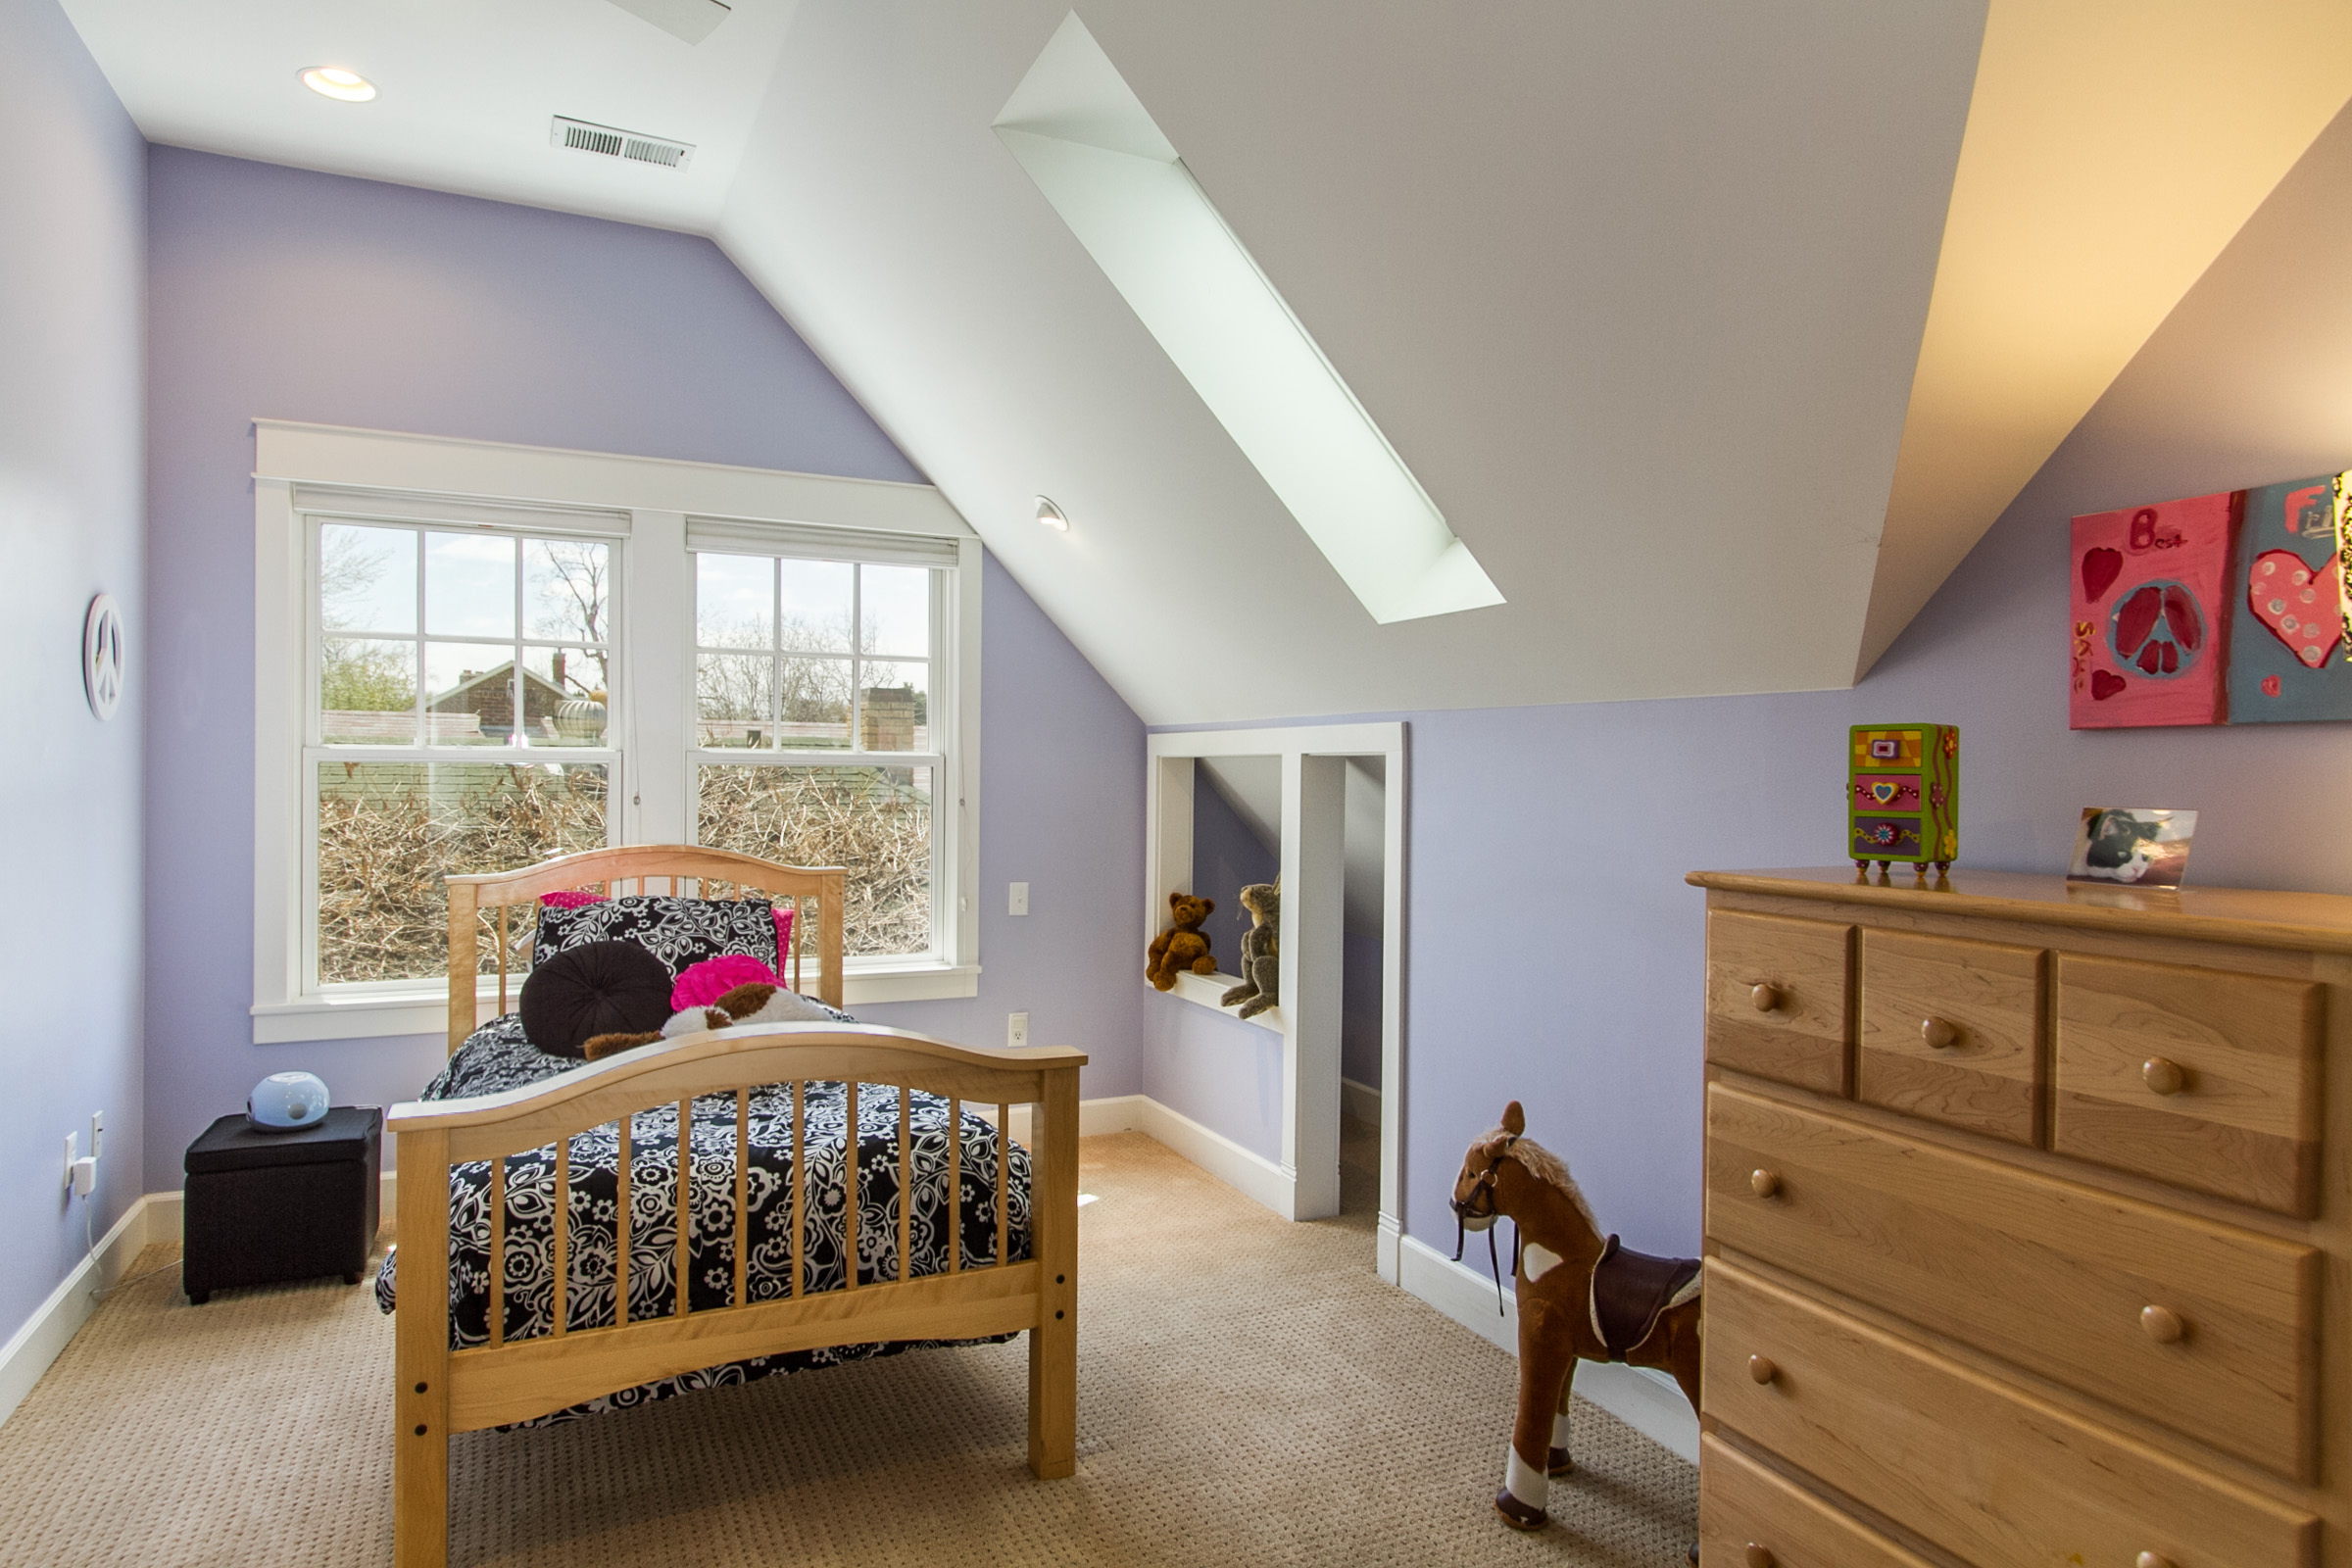 1246066_Bedroom-Two-Features-Playhouse-Alcove_high.jpg